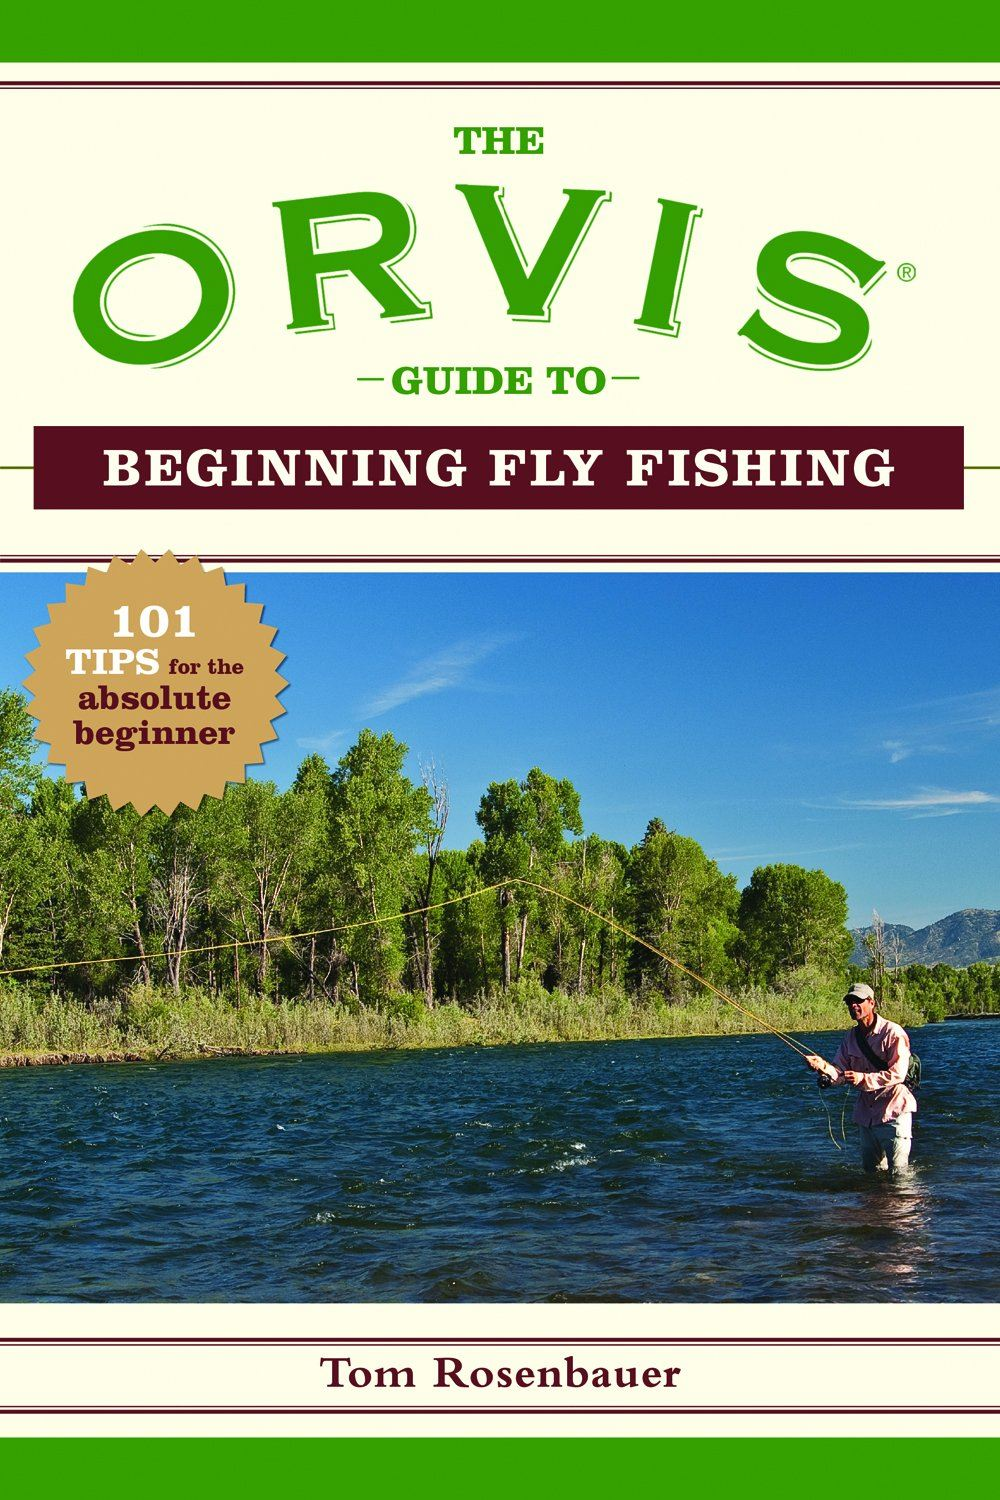 The Orvis Guide To Beginning Fly Fishing: 101 Tips for the Absolute Beginner By: Tom Rosenbauer, The Orvis Company